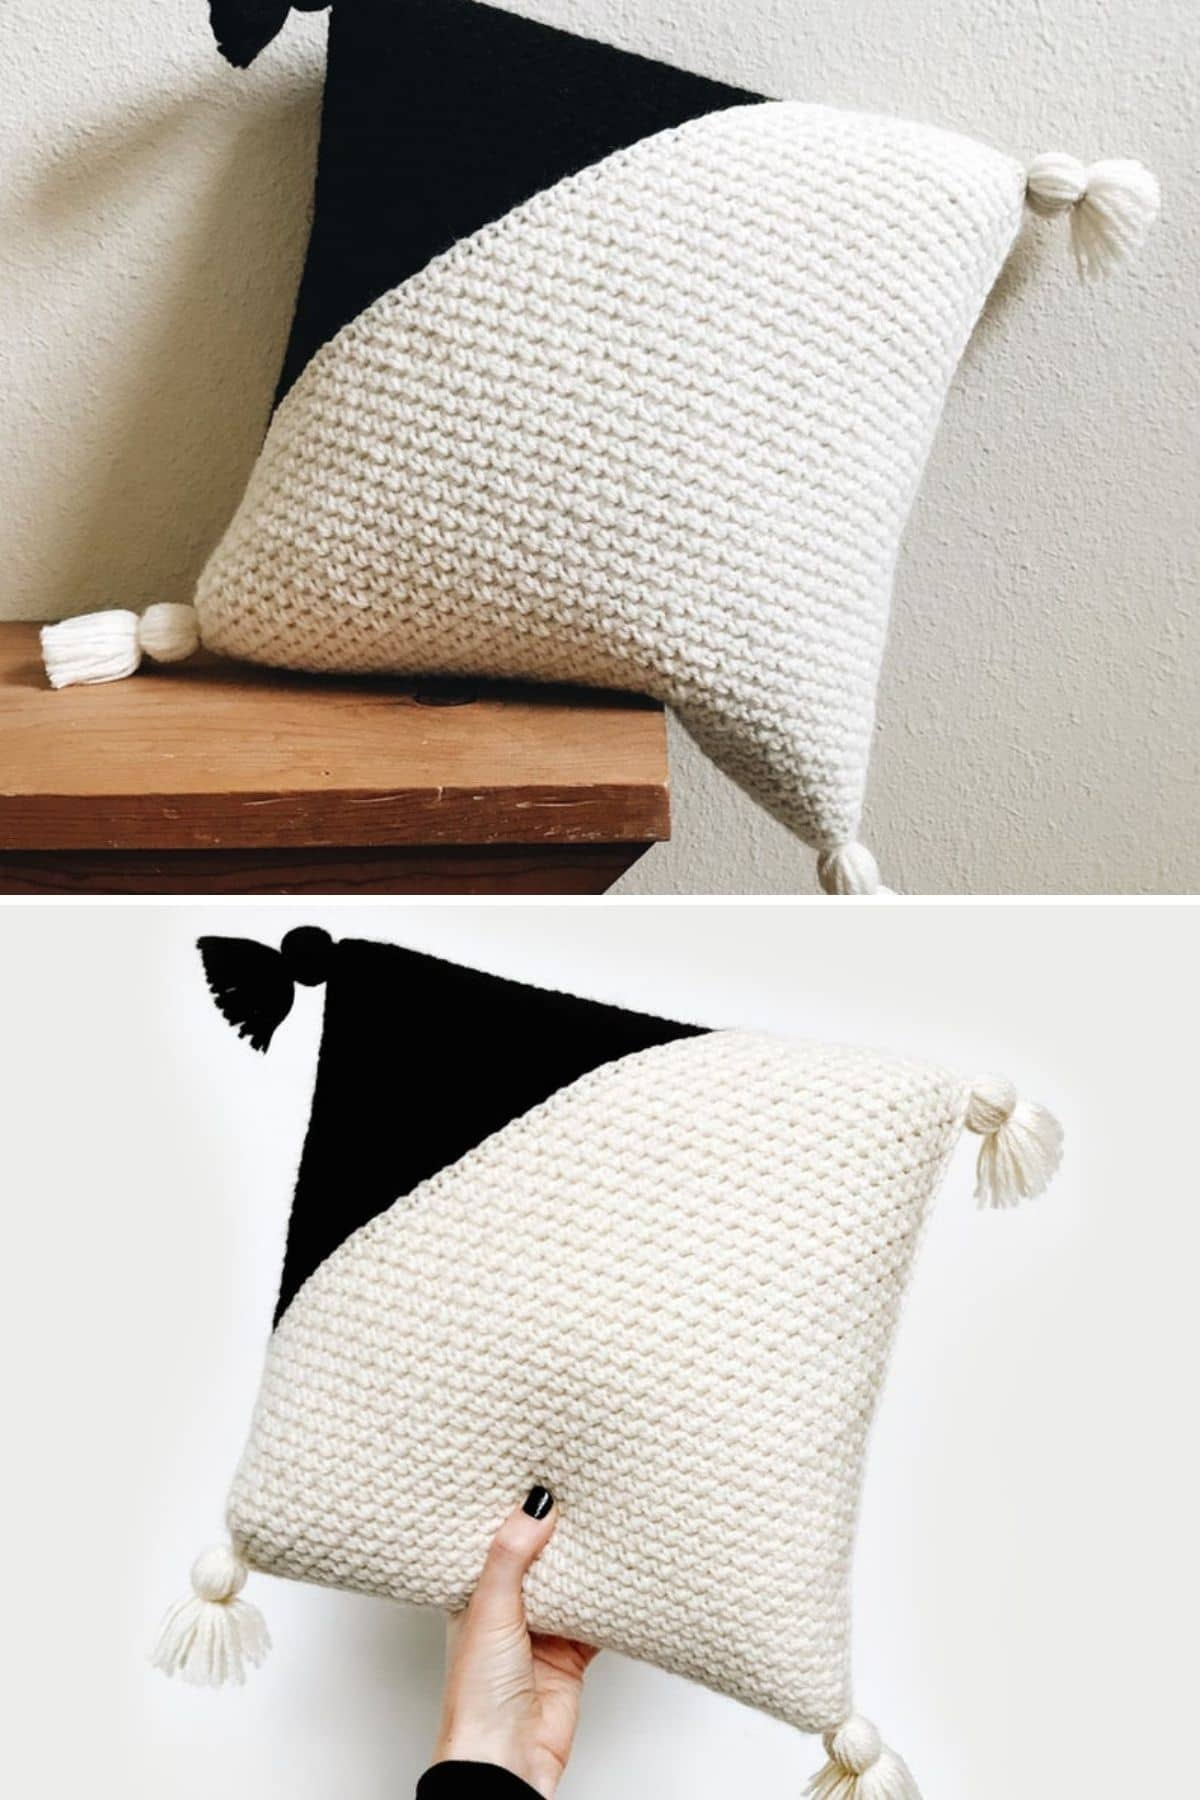 White and black color block pillow with tassels